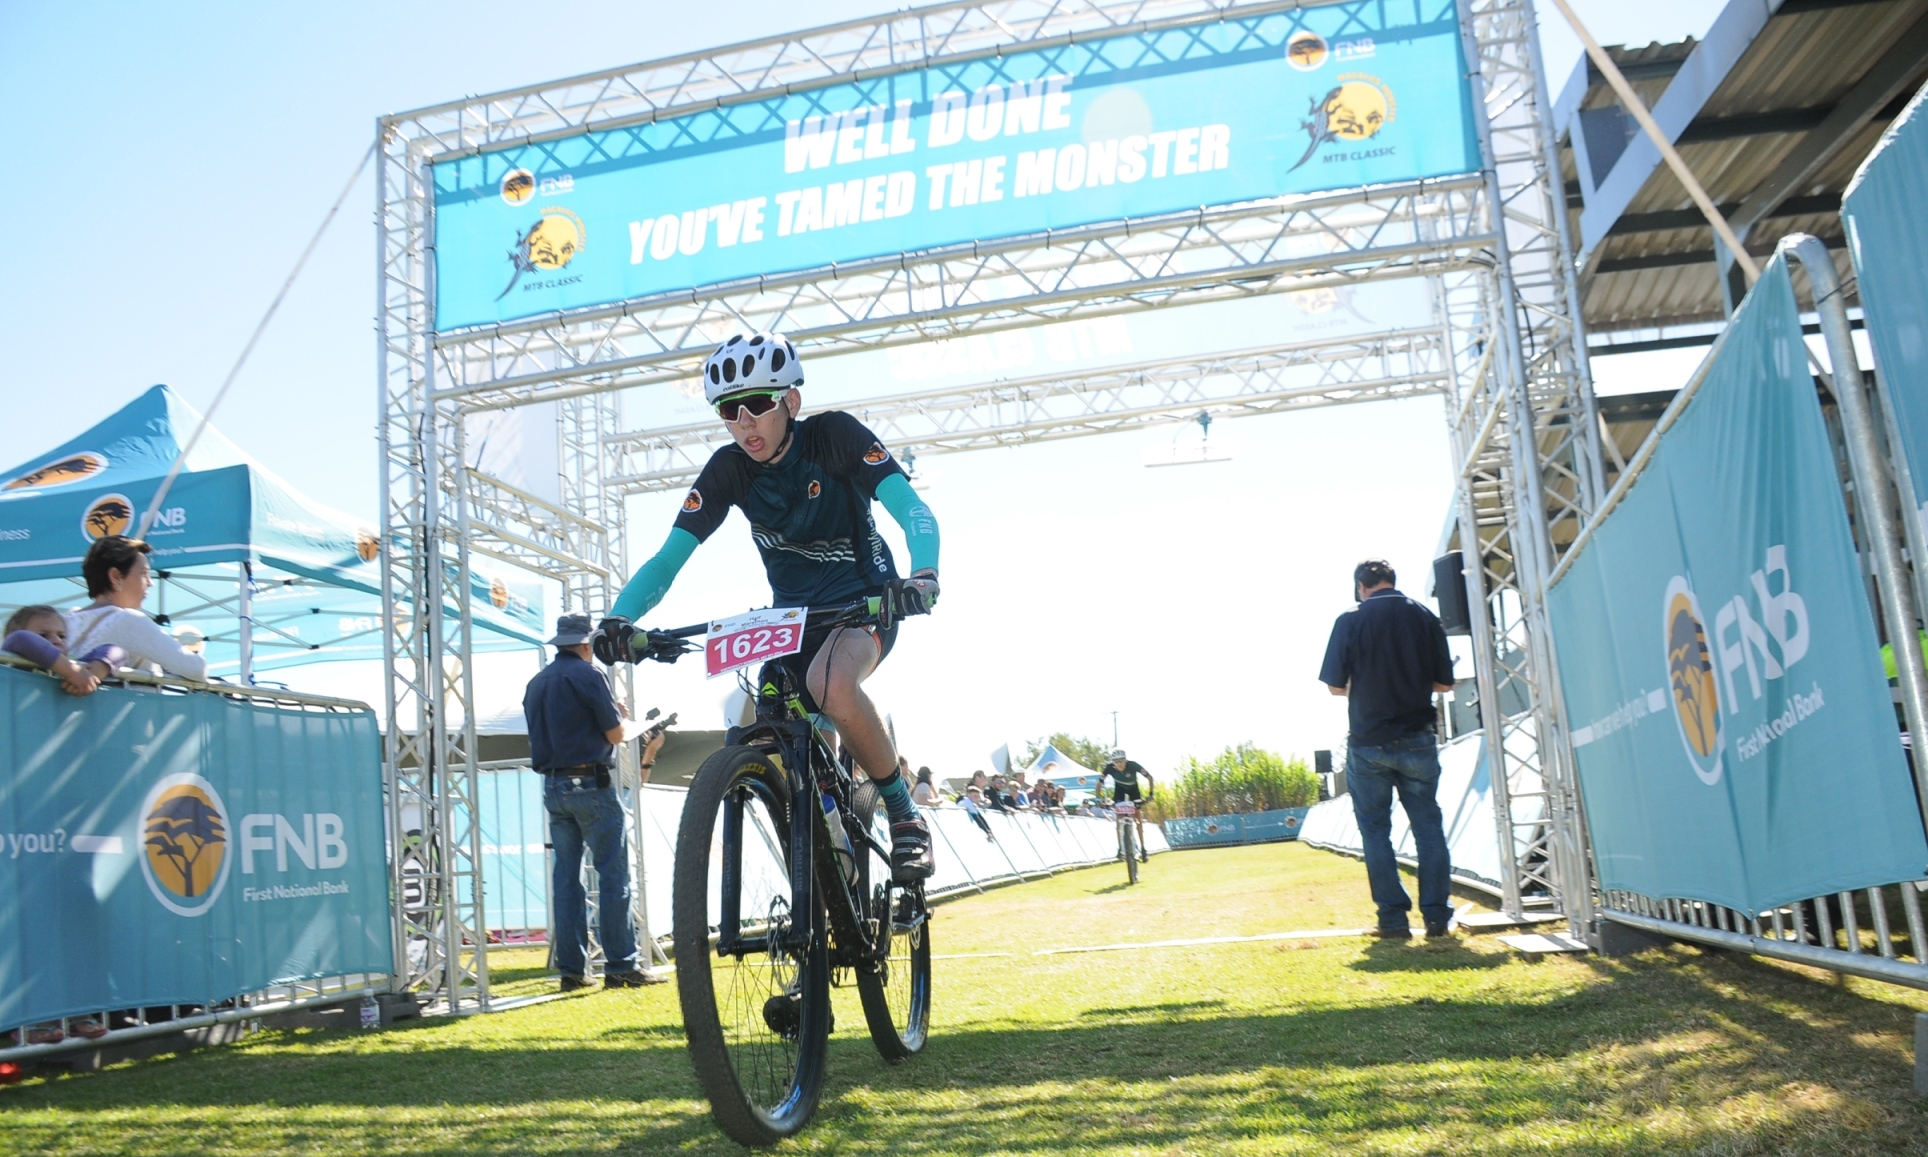 Botha overcomes the odds to pursue his love for mountain biking